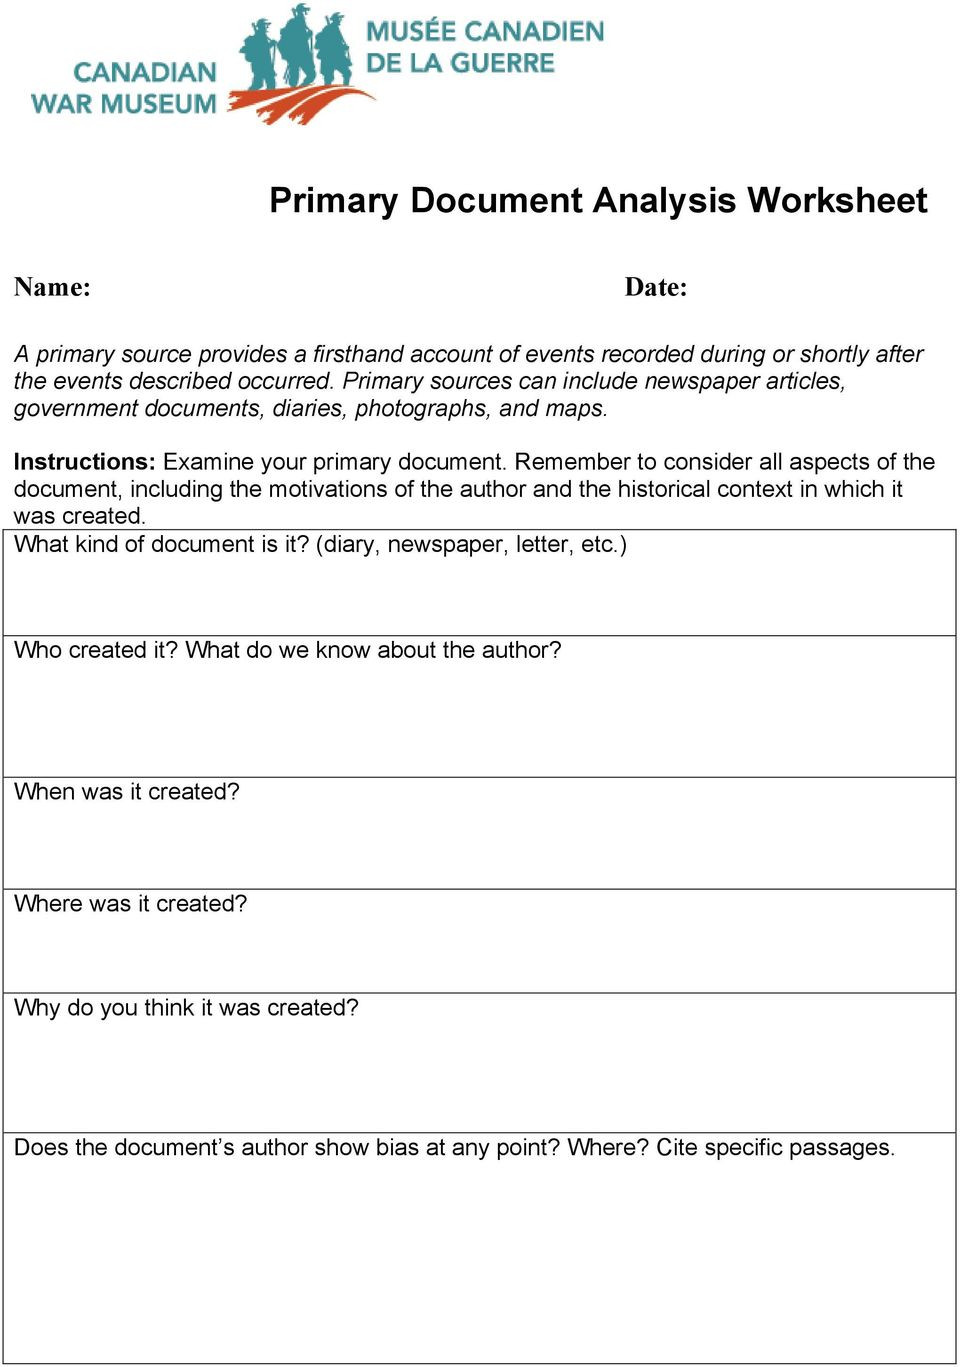 Reliable sources Worksheet Middle School Paring Primary and Secondary sources Lesson Plan Pdf